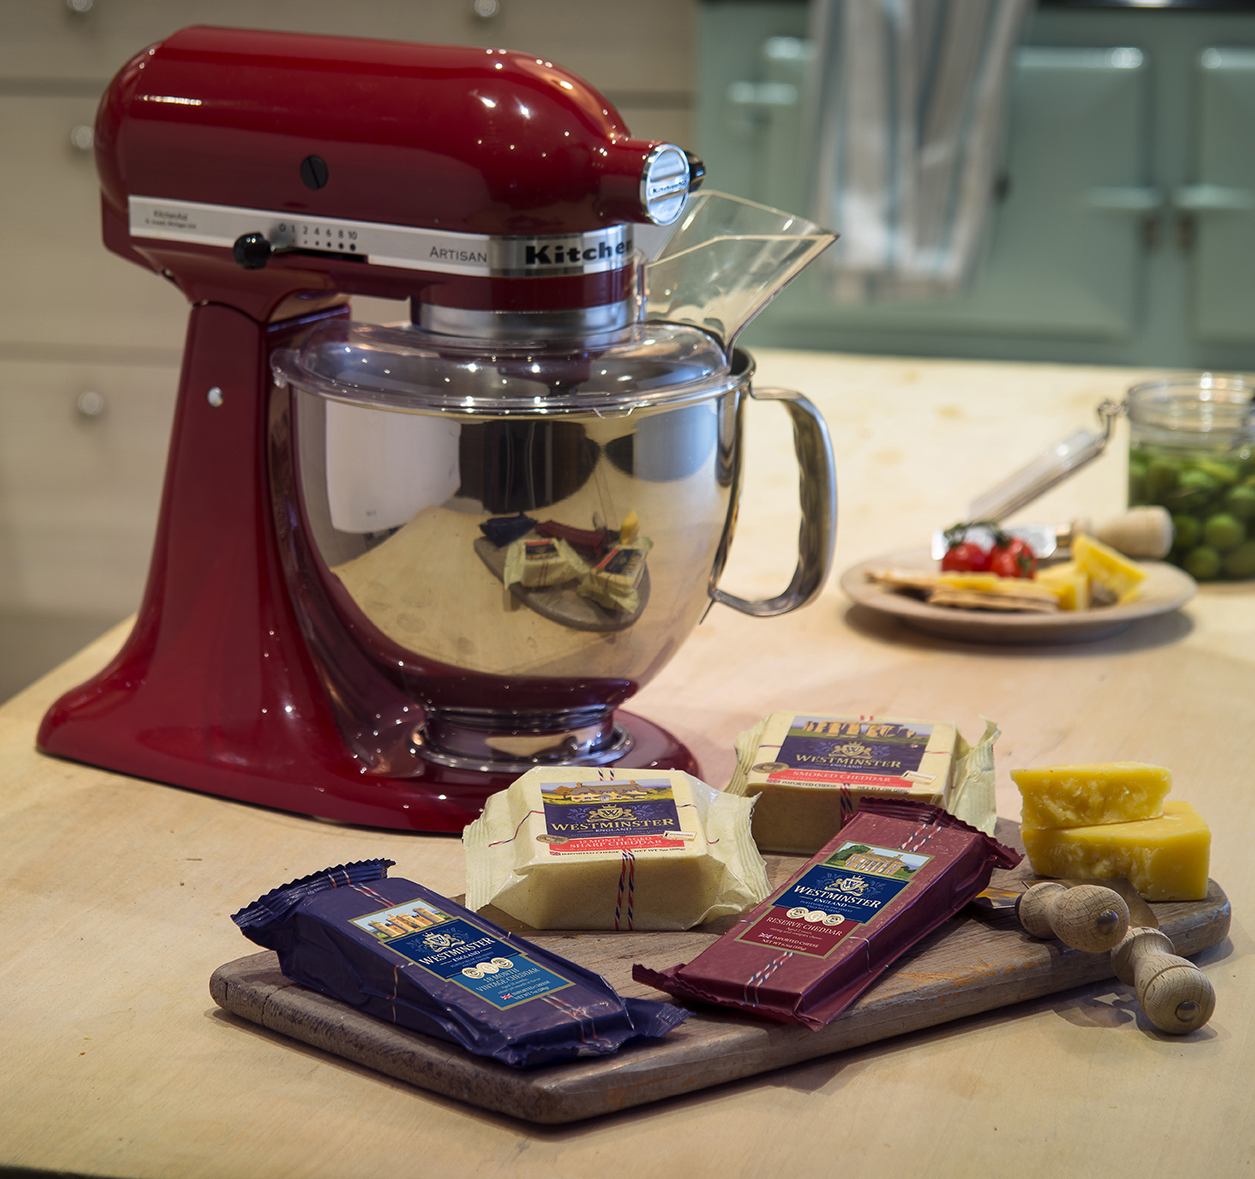 Westminster KitchenAid Competition